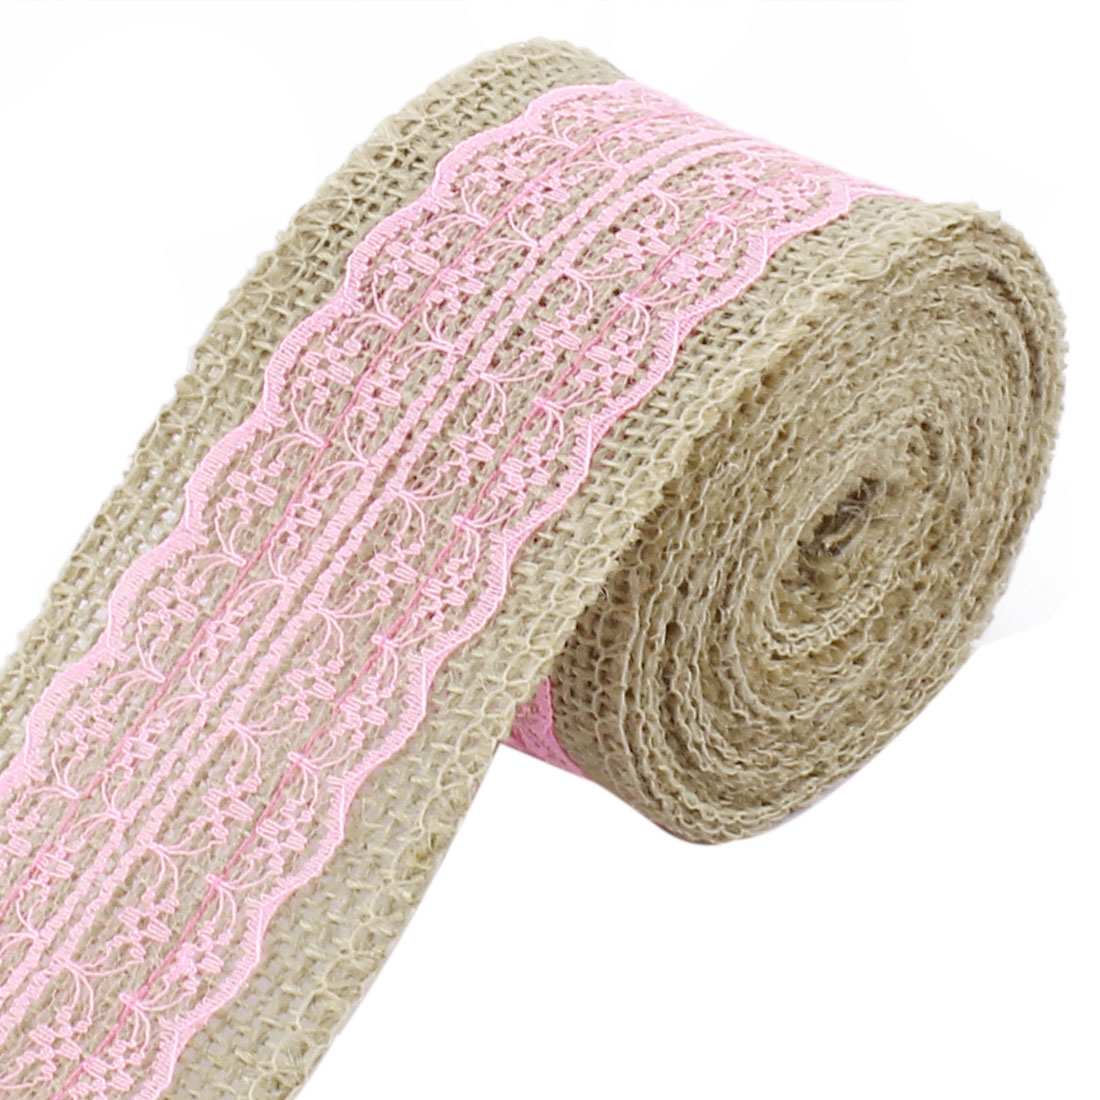 Unique Bargains Christmas Burlap DIY Gift Wrapping Packing Ornament Craft Ribbon Roll Pink